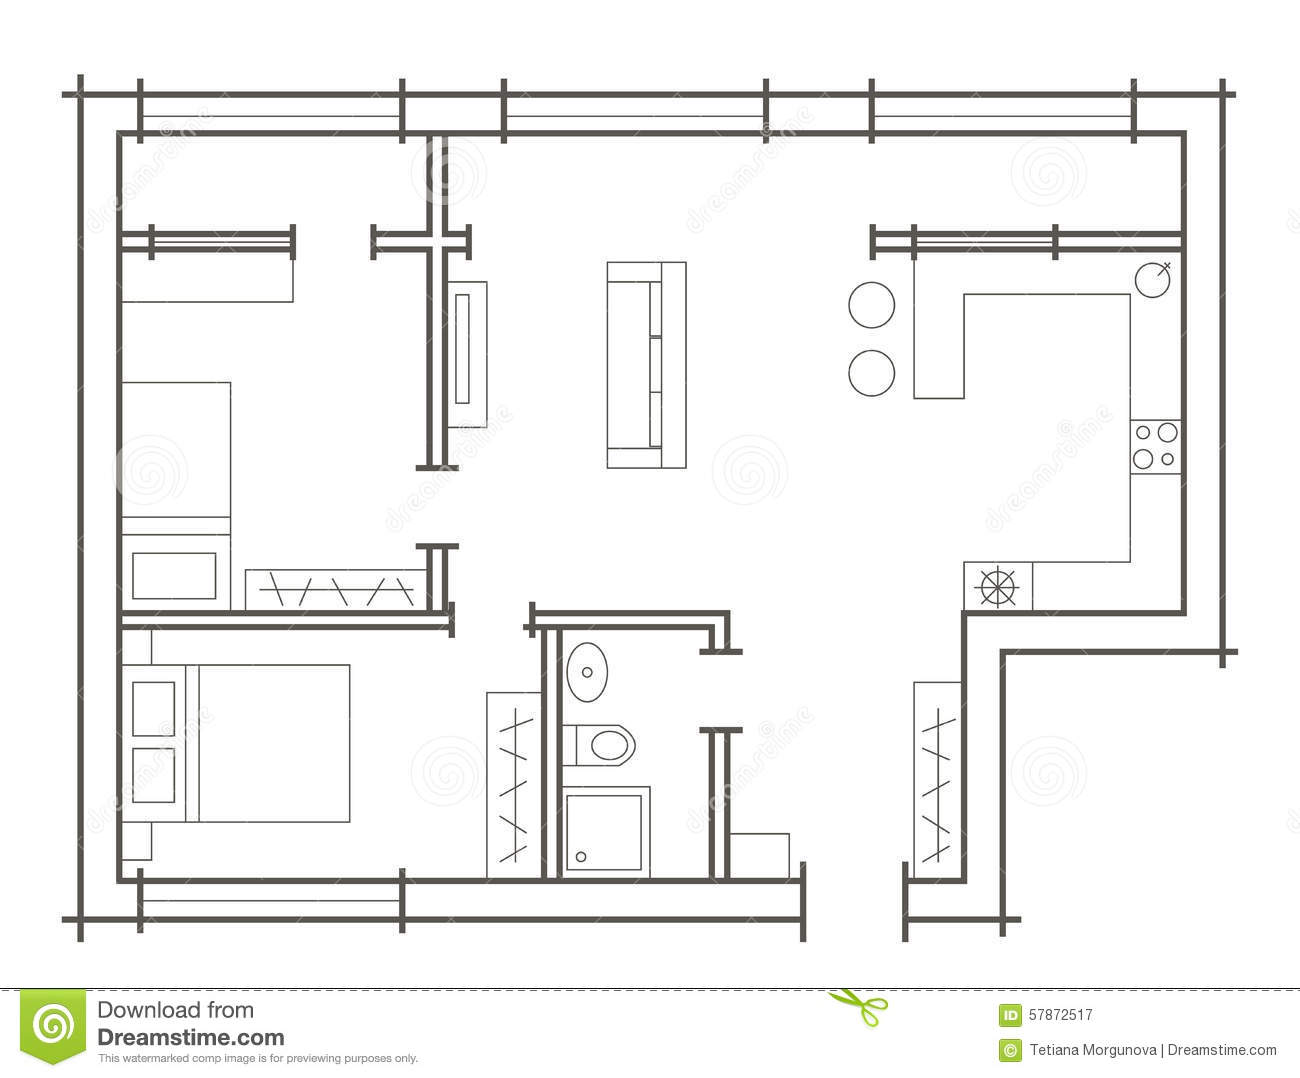 Plan sketch of two bedroom apartment stock vector image for Design layout 2 bedroom flat